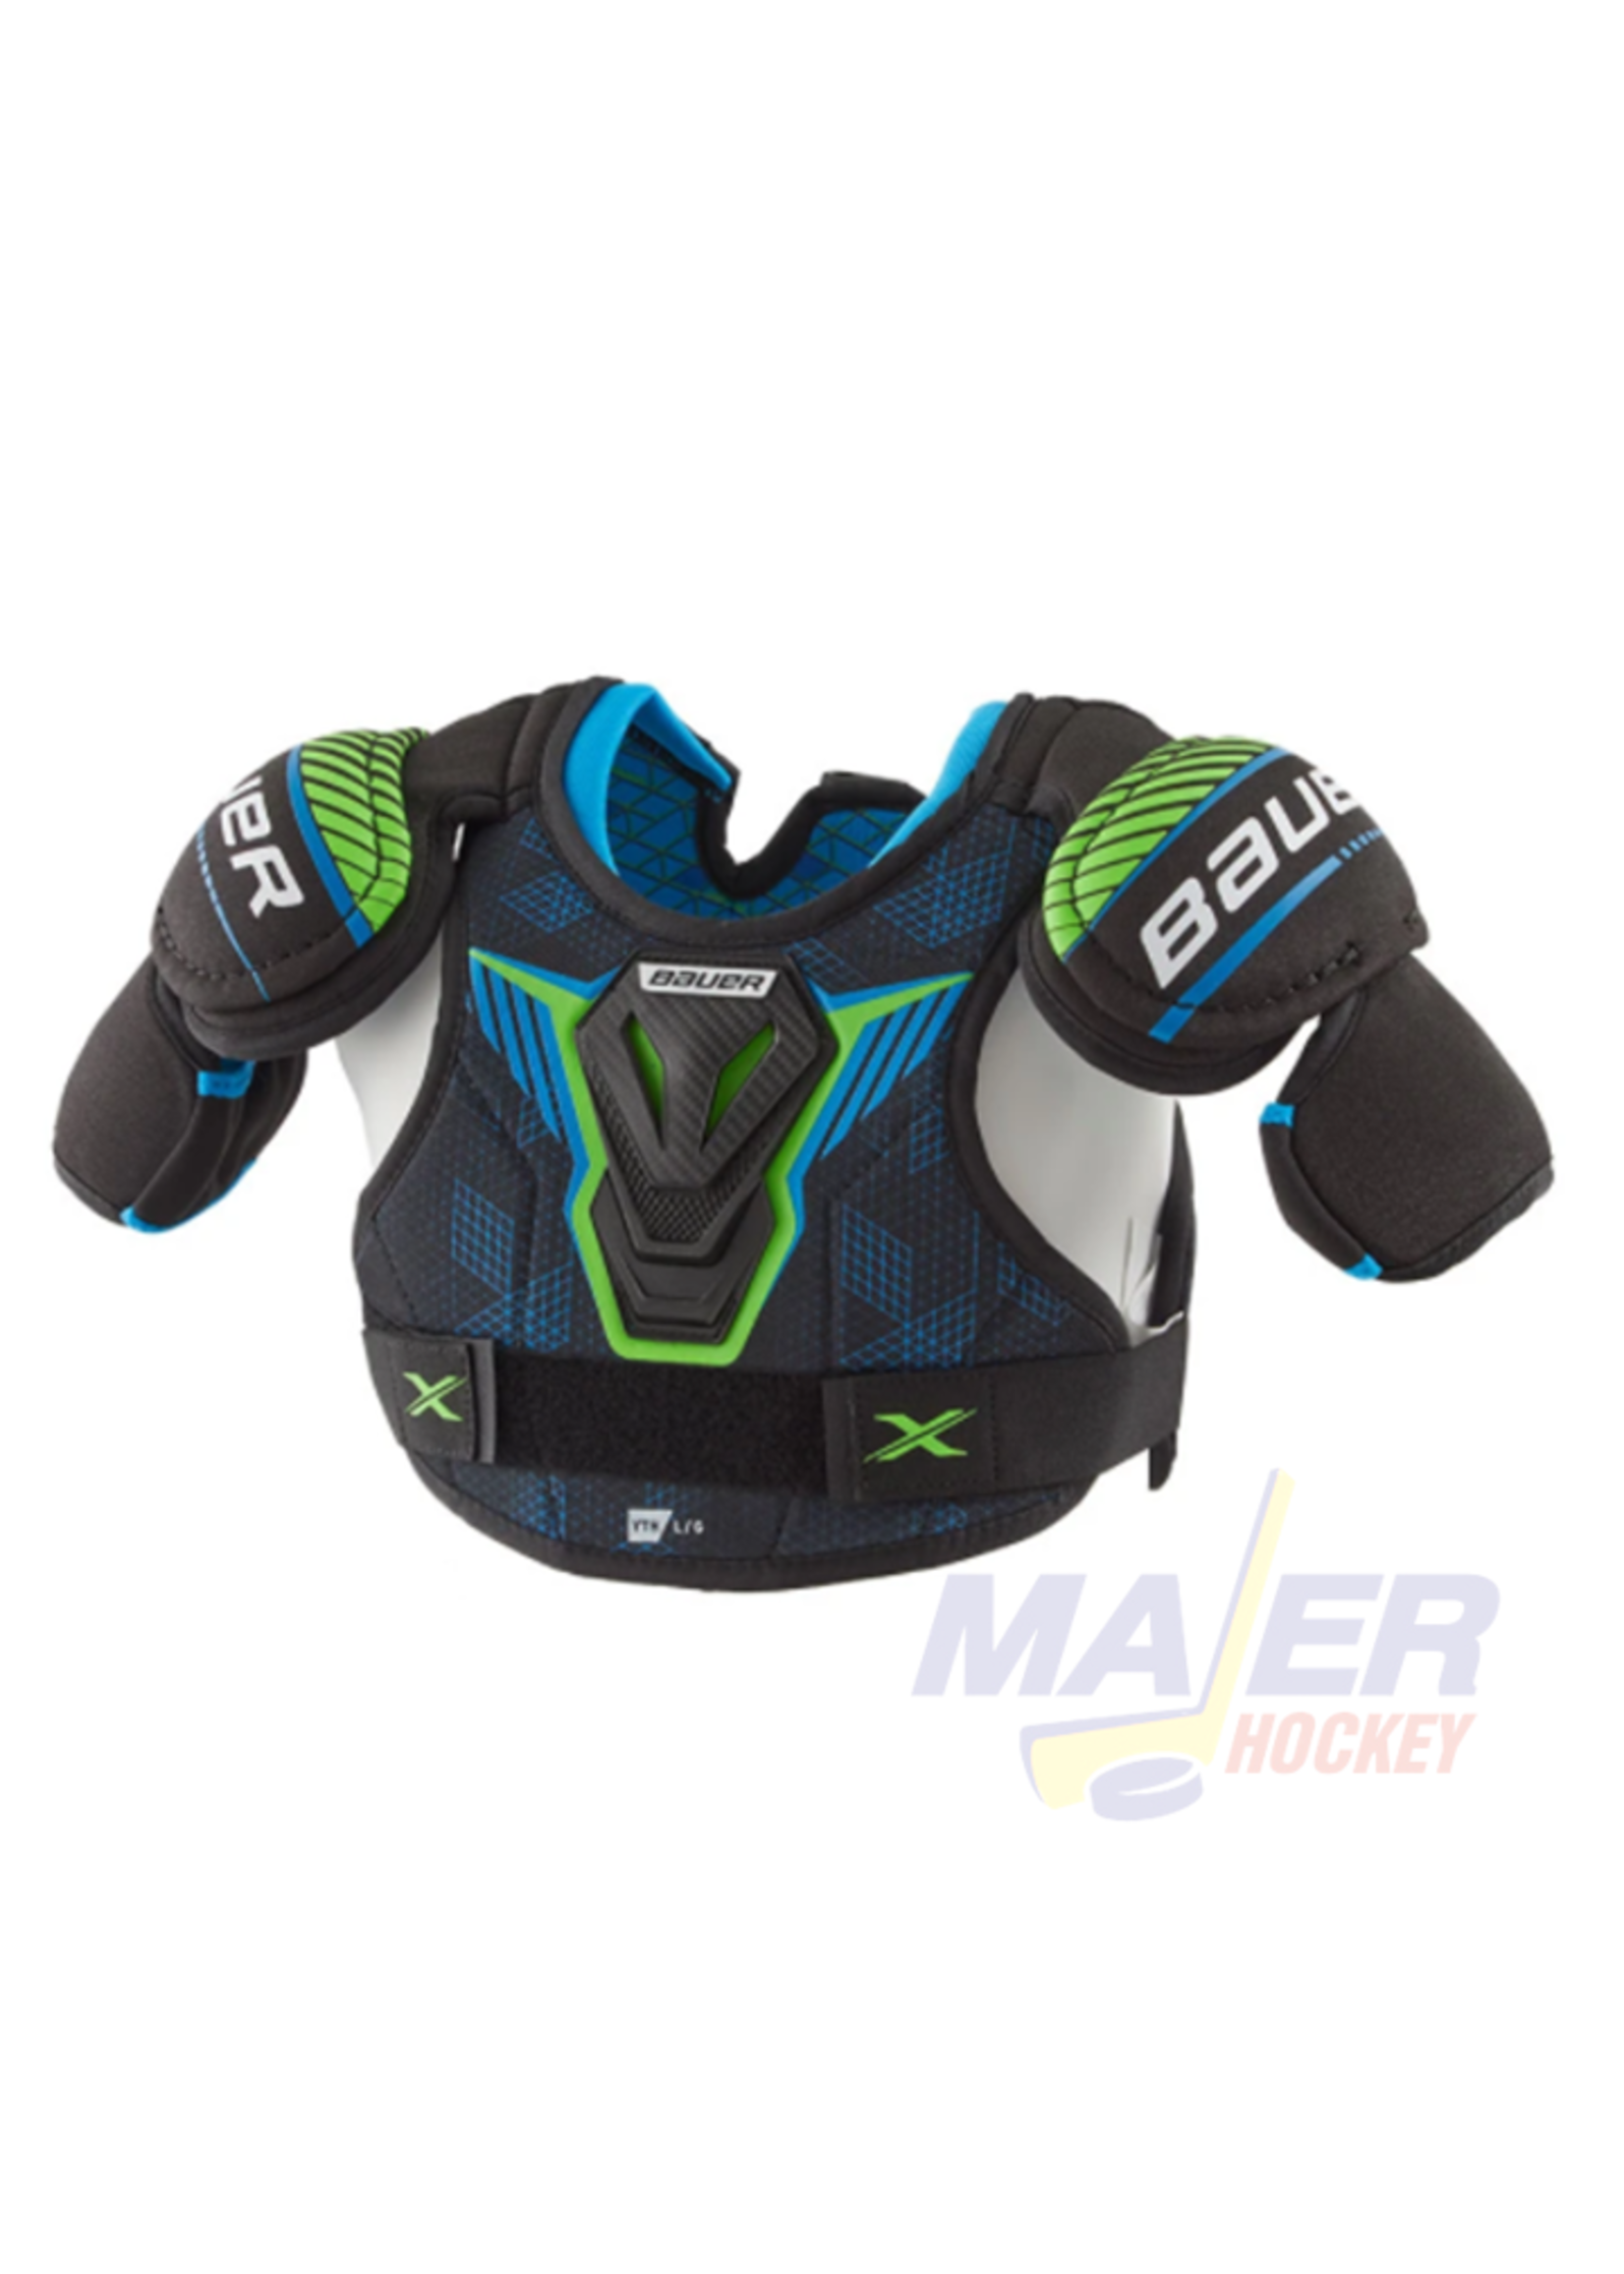 Bauer X Youth Shoulder Pads